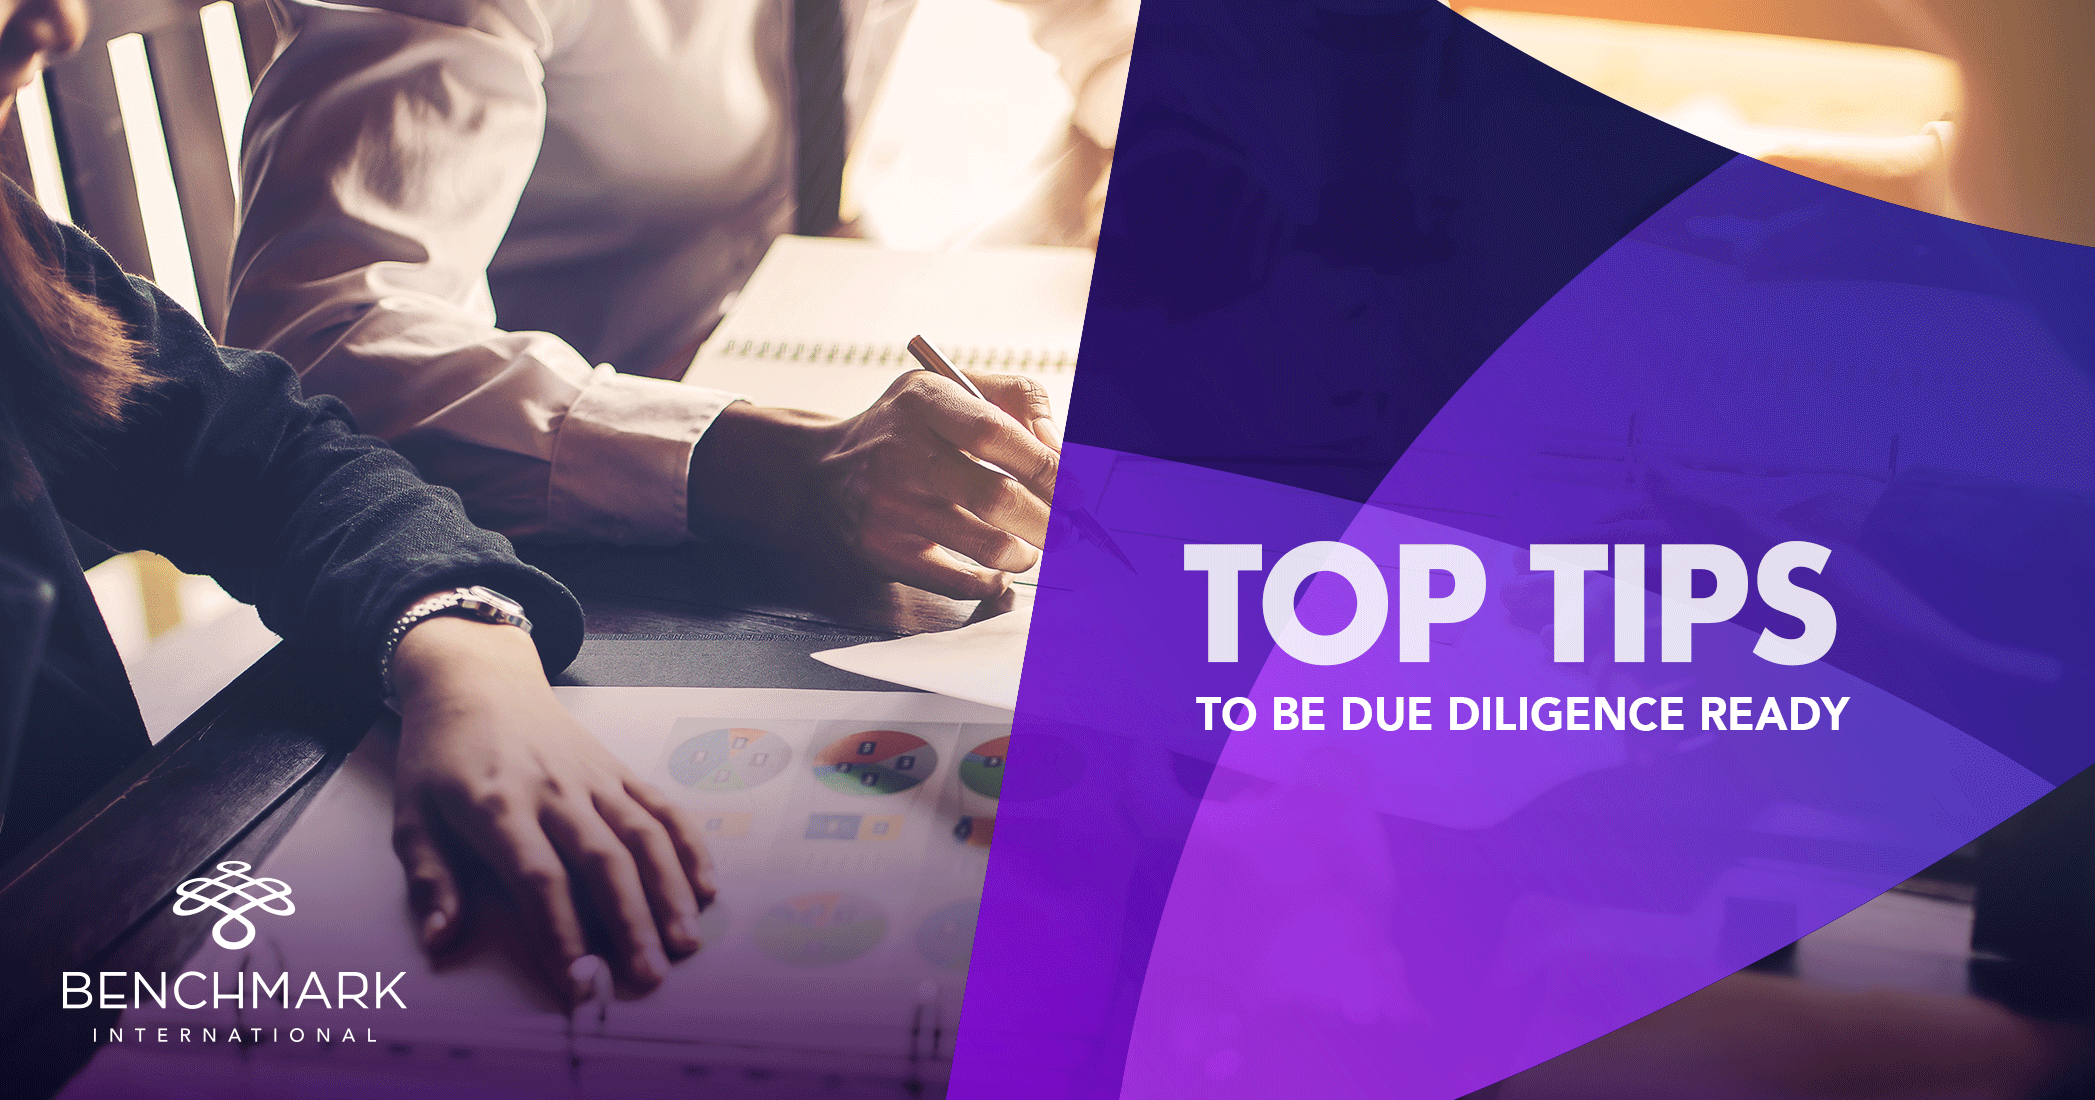 Top Tips to be Due Diligence Ready